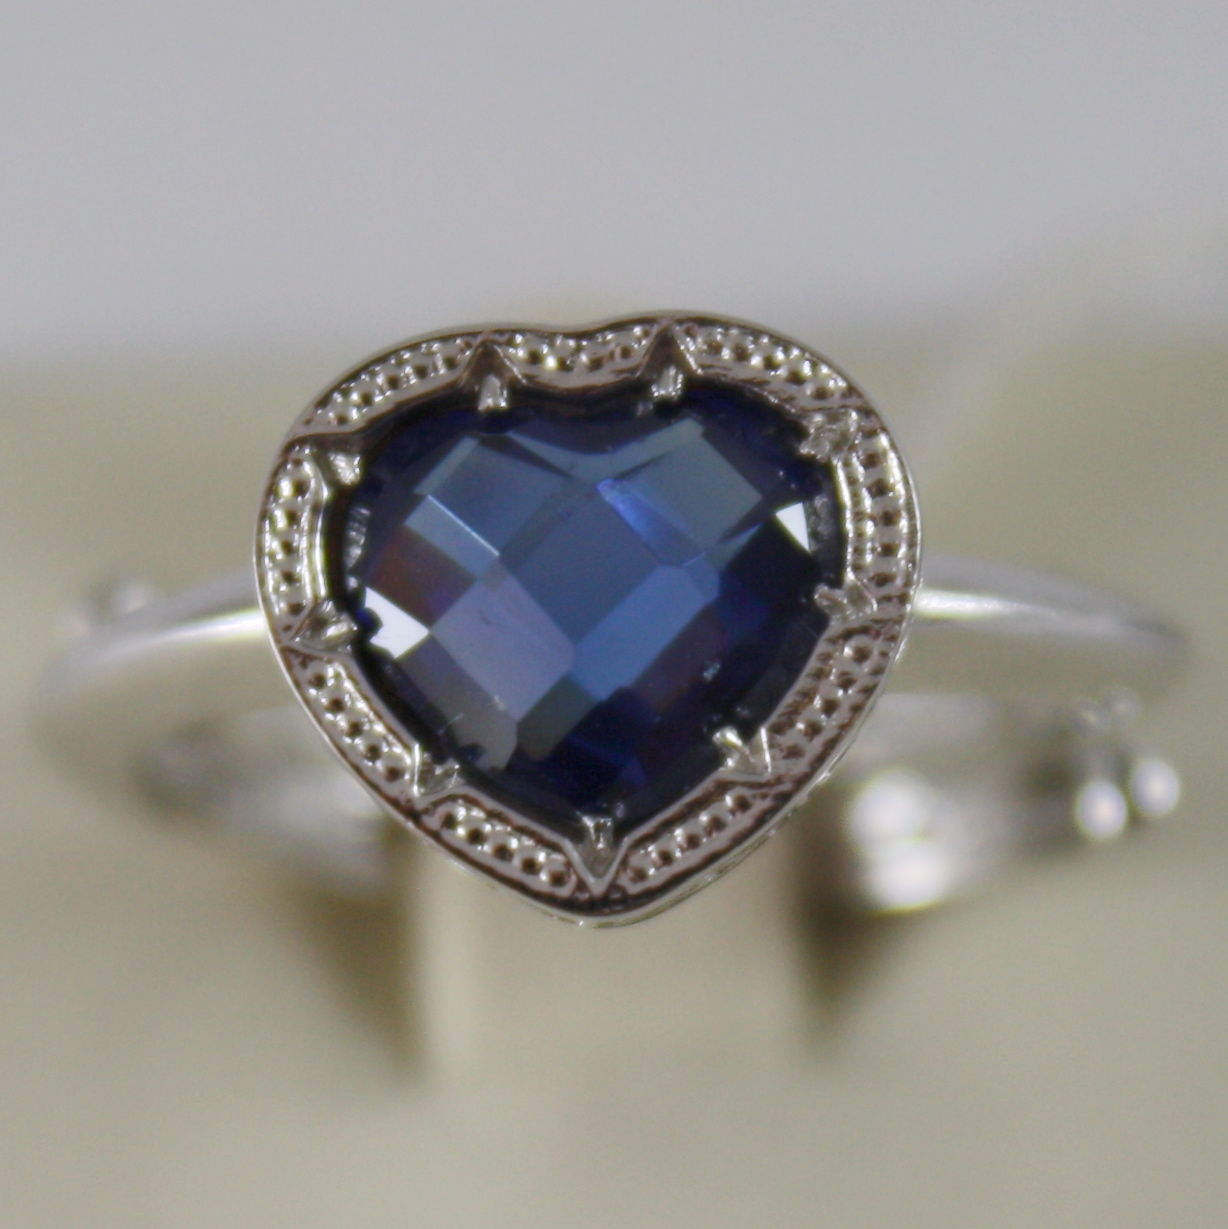 RHODIUM BRONZE RING WITH HEART BLUE QUARTZ B14ABI24 BY REBECCA, MADE IN ITALY